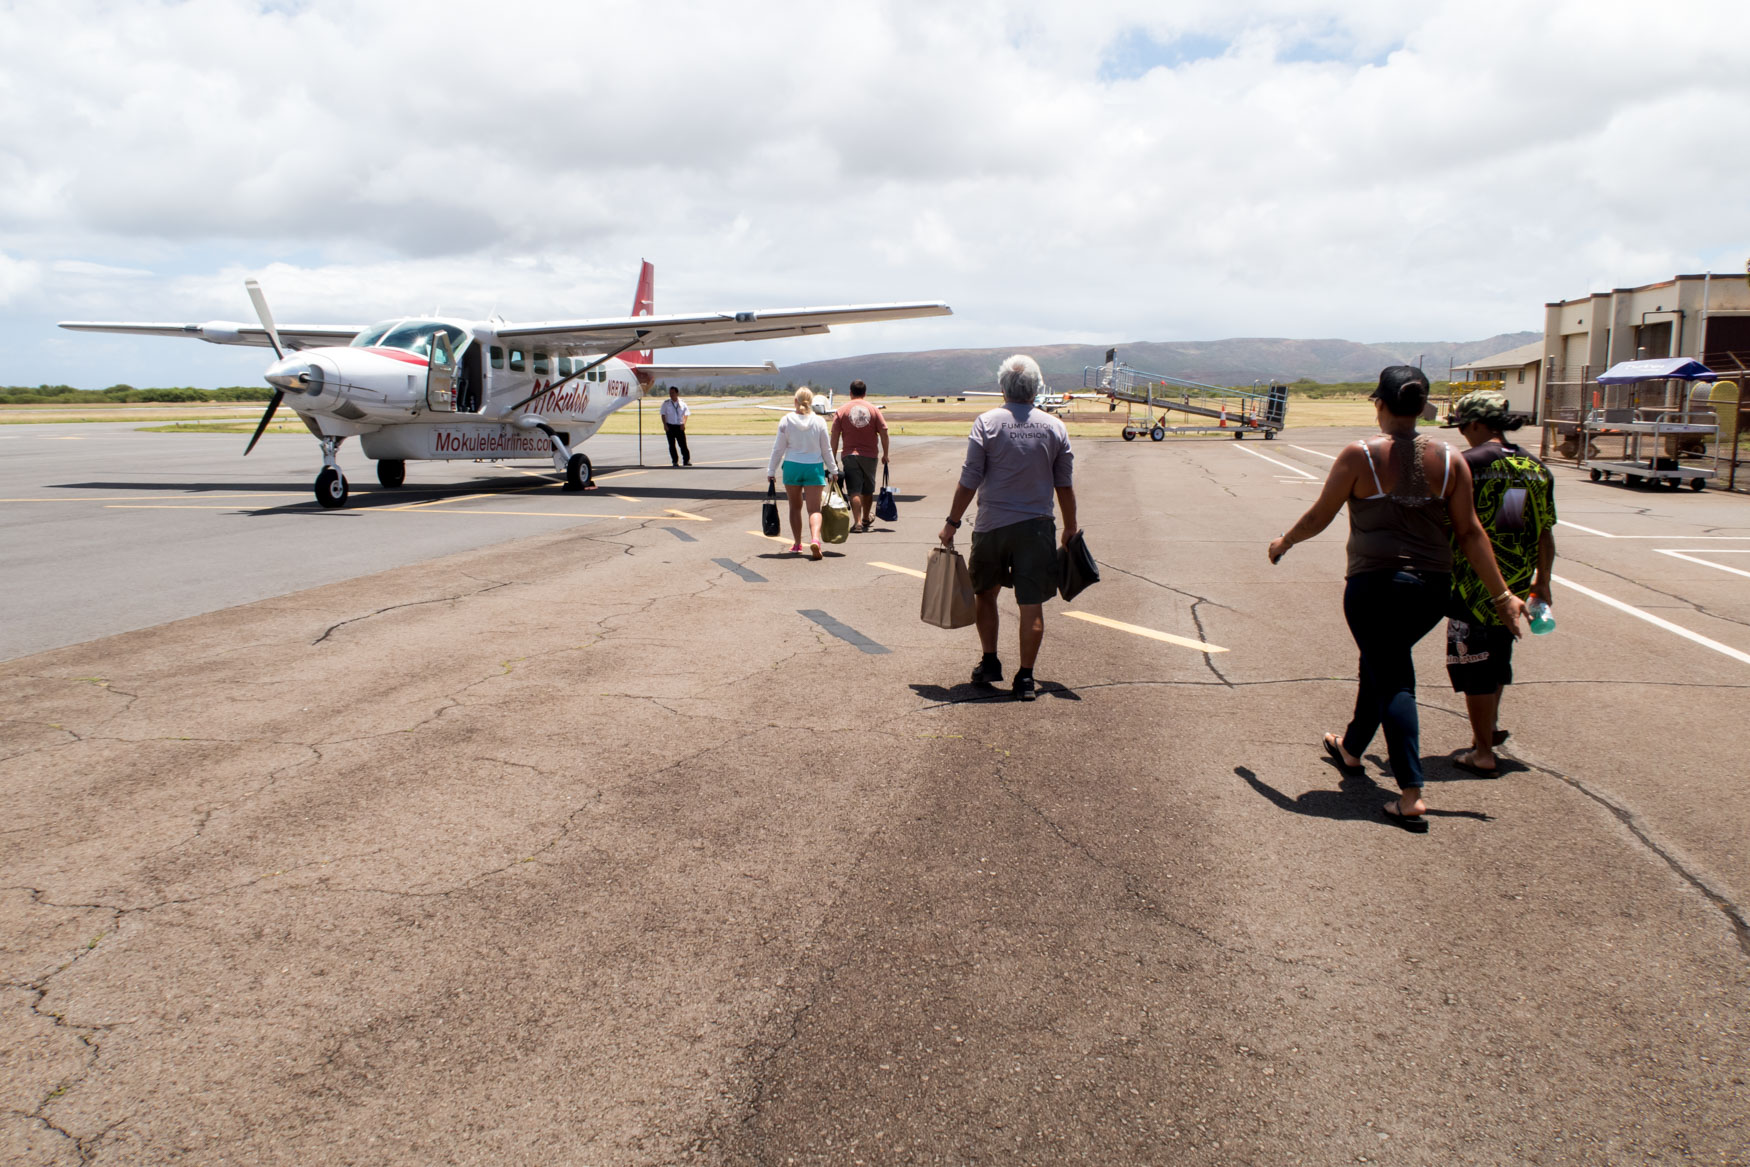 Boarding Mokulele Airlines at Molokai Airport